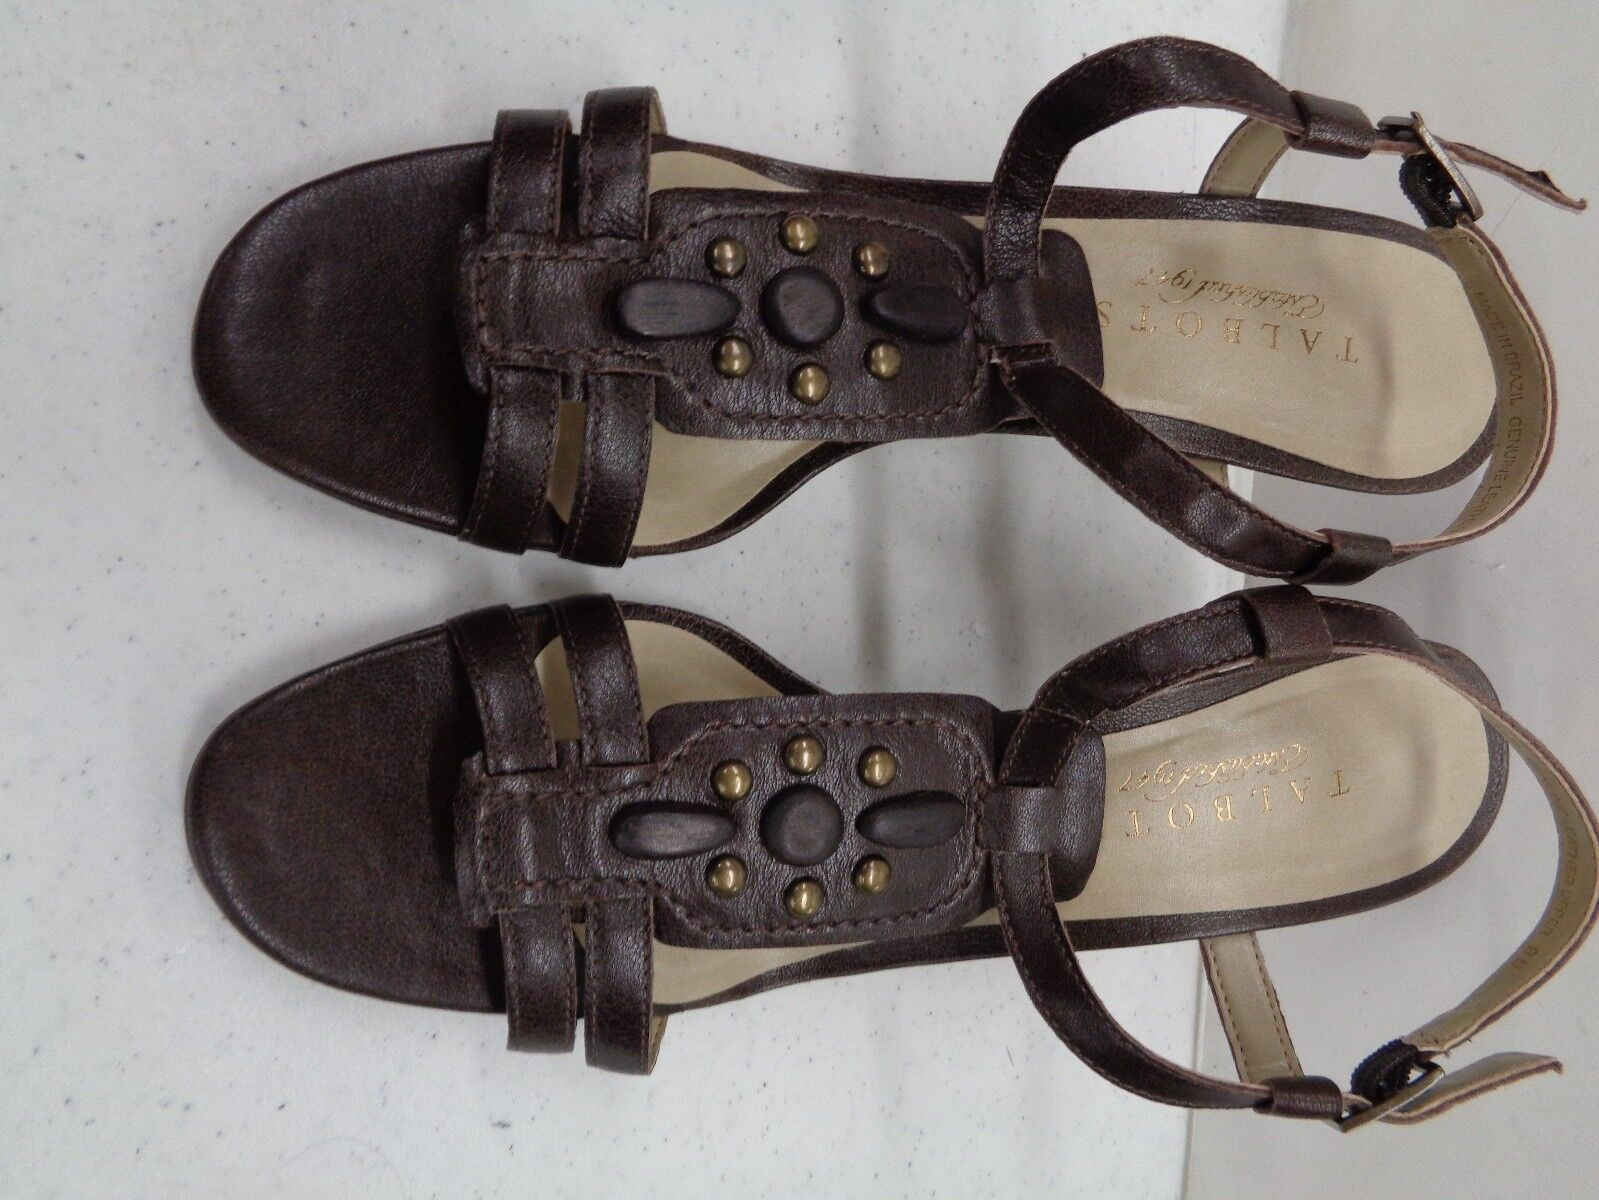 Talbots Ravis Bittersweet Bittersweet Bittersweet Heels shoes NEVER WORN 8M BRAND NEW IN BOX Retail 129 2e3964